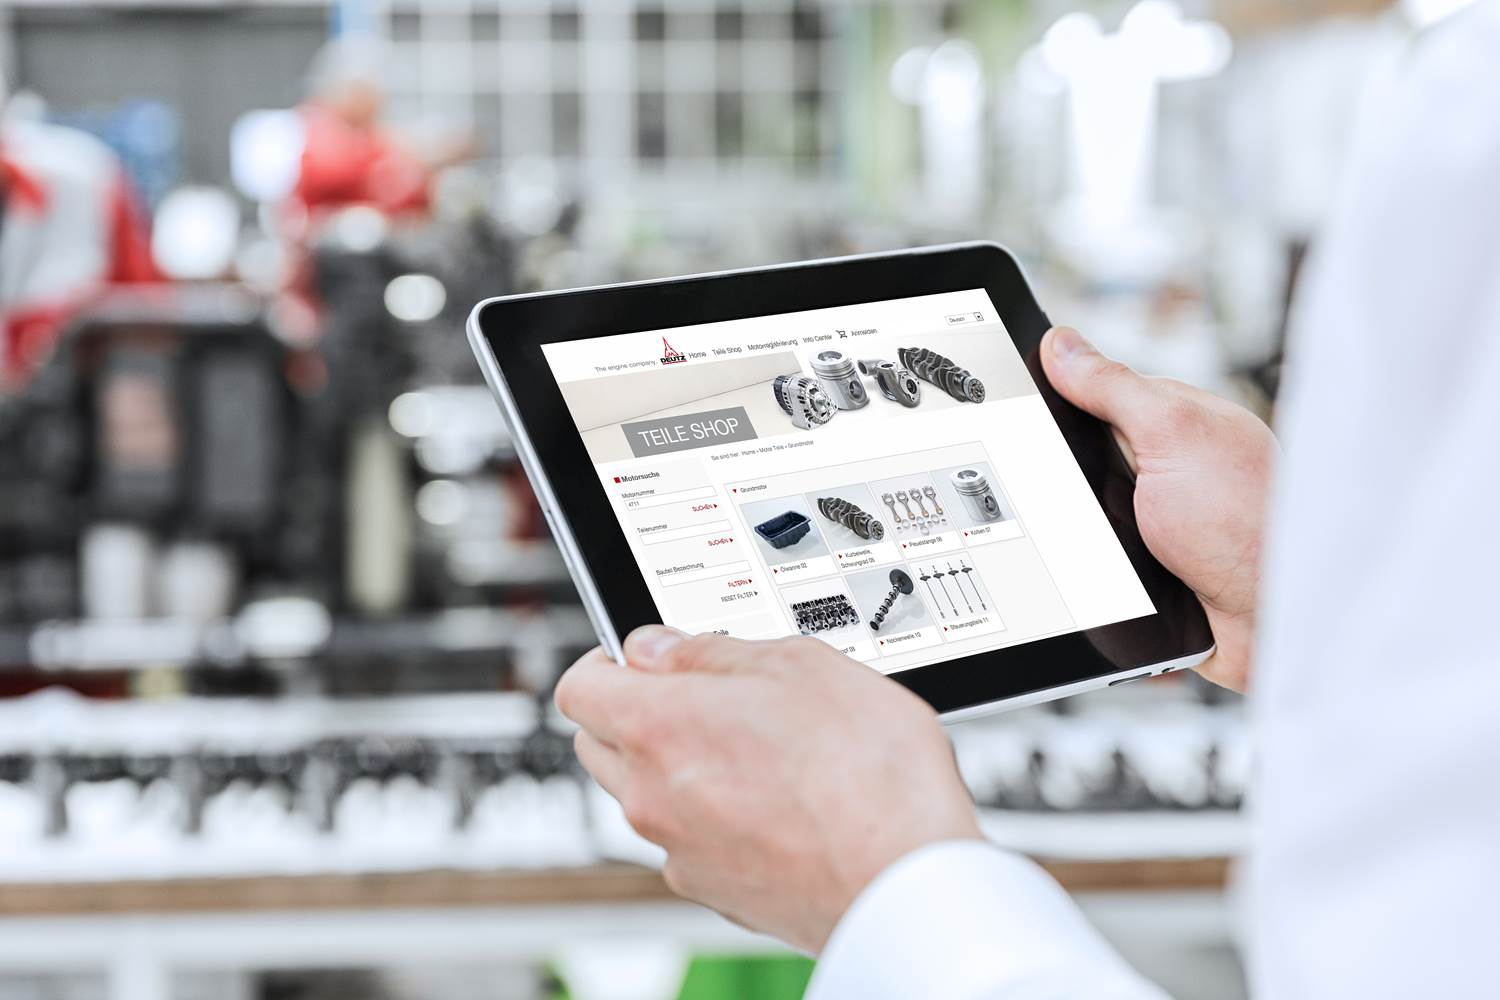 Deutz webshop enhancement